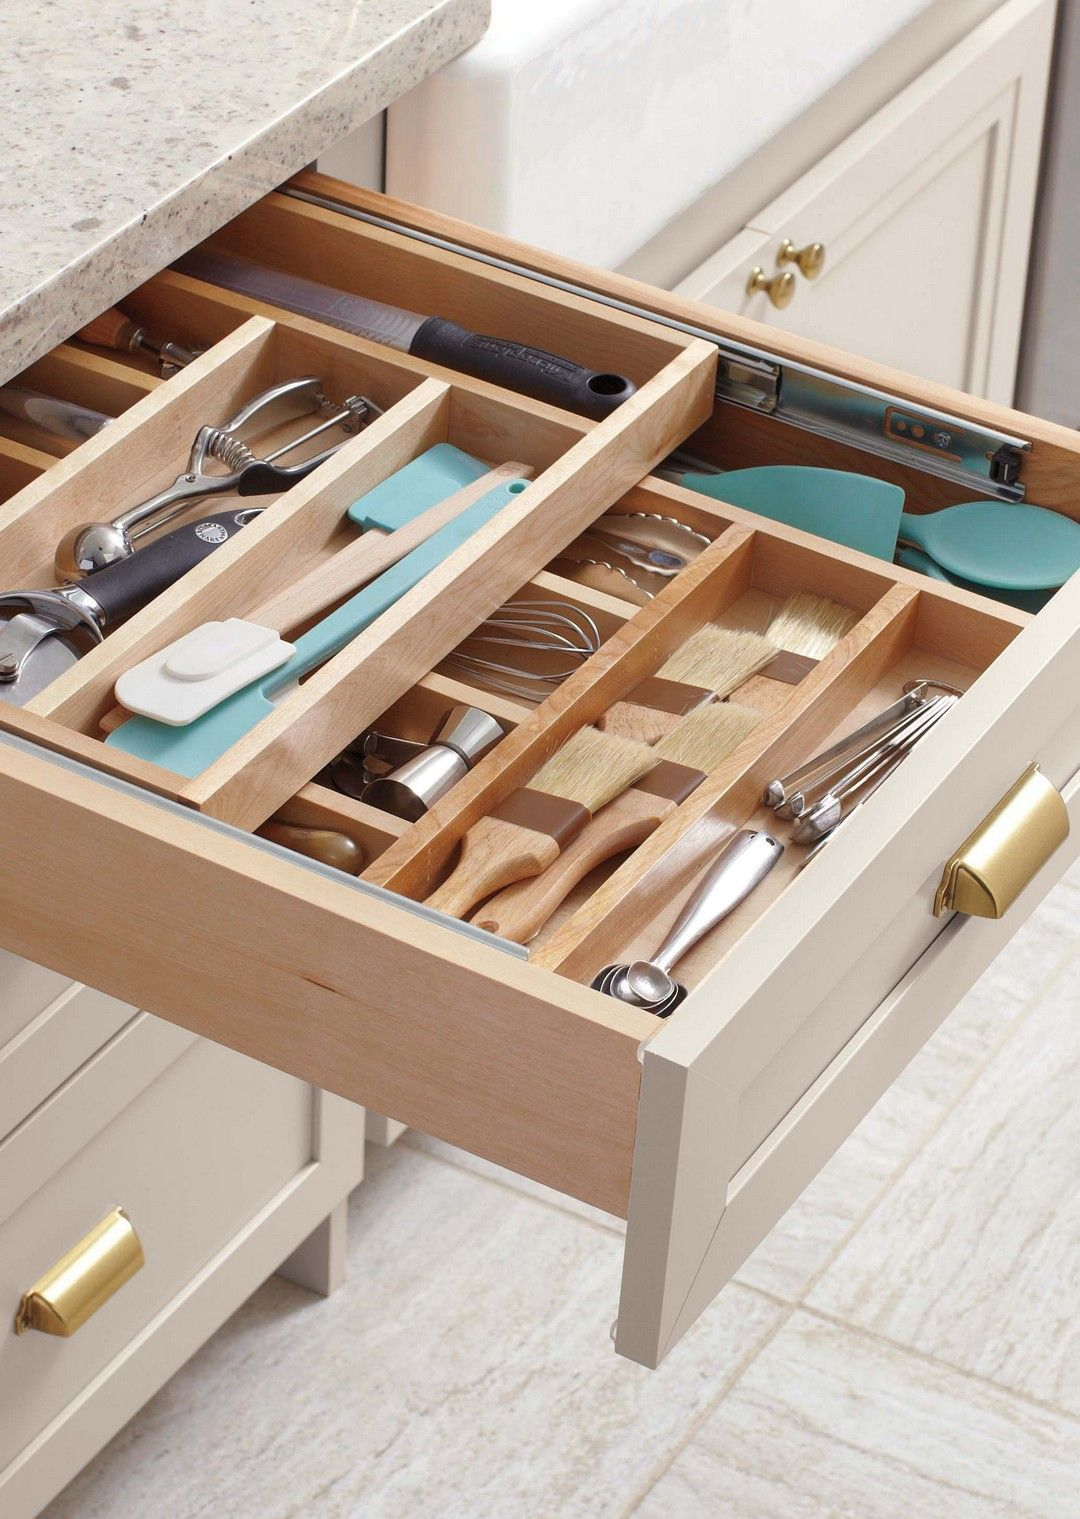 29 Brilliant Hidden Kitchen Storage Solutions #storagesolutions